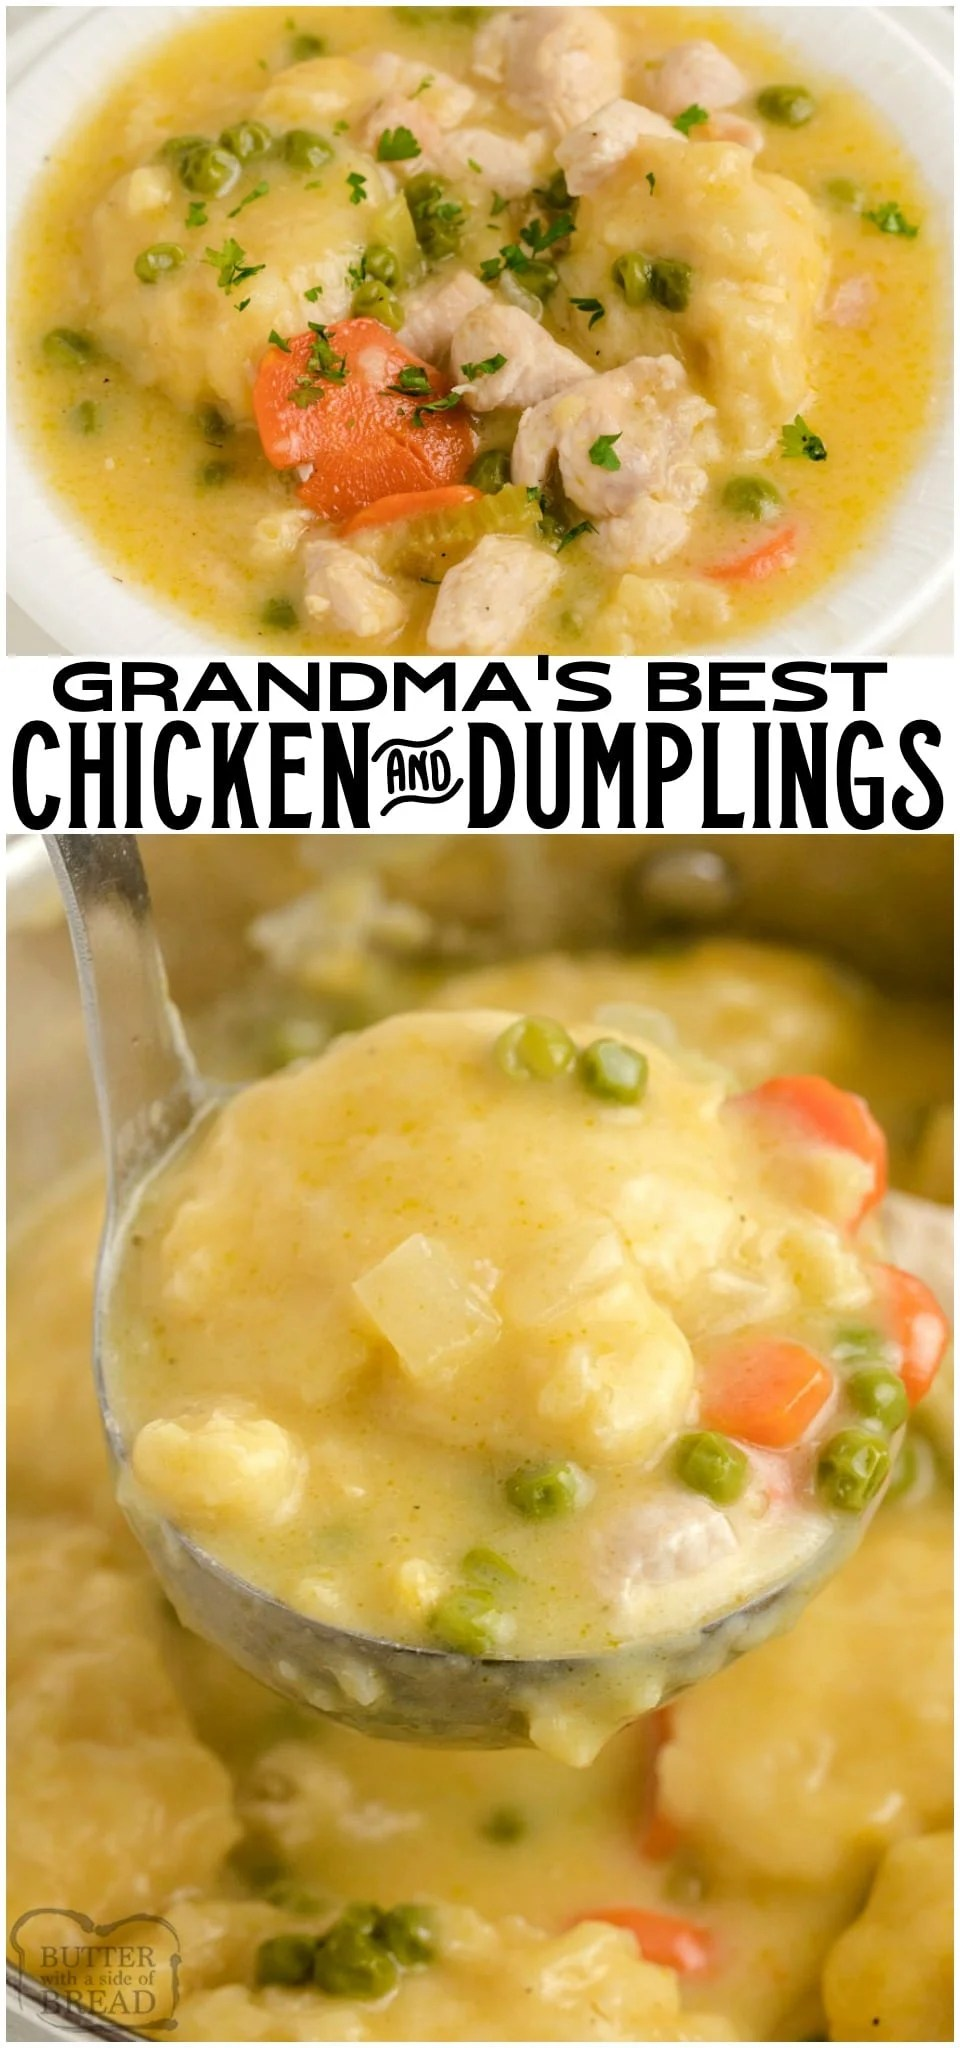 Chicken and Dumplings recipe made with juicy chicken, fresh vegetables and homemade biscuit dumplings. Seriously THE BEST homemade dumplings you've ever tasted. Simple tips to make the EASIEST chicken dumplings dinner ever. #chicken #dinner #dumplings #homemade #easyrecipe #easydinner #chickendinner #recipe from BUTTER WITH A SIDE OF BREAD